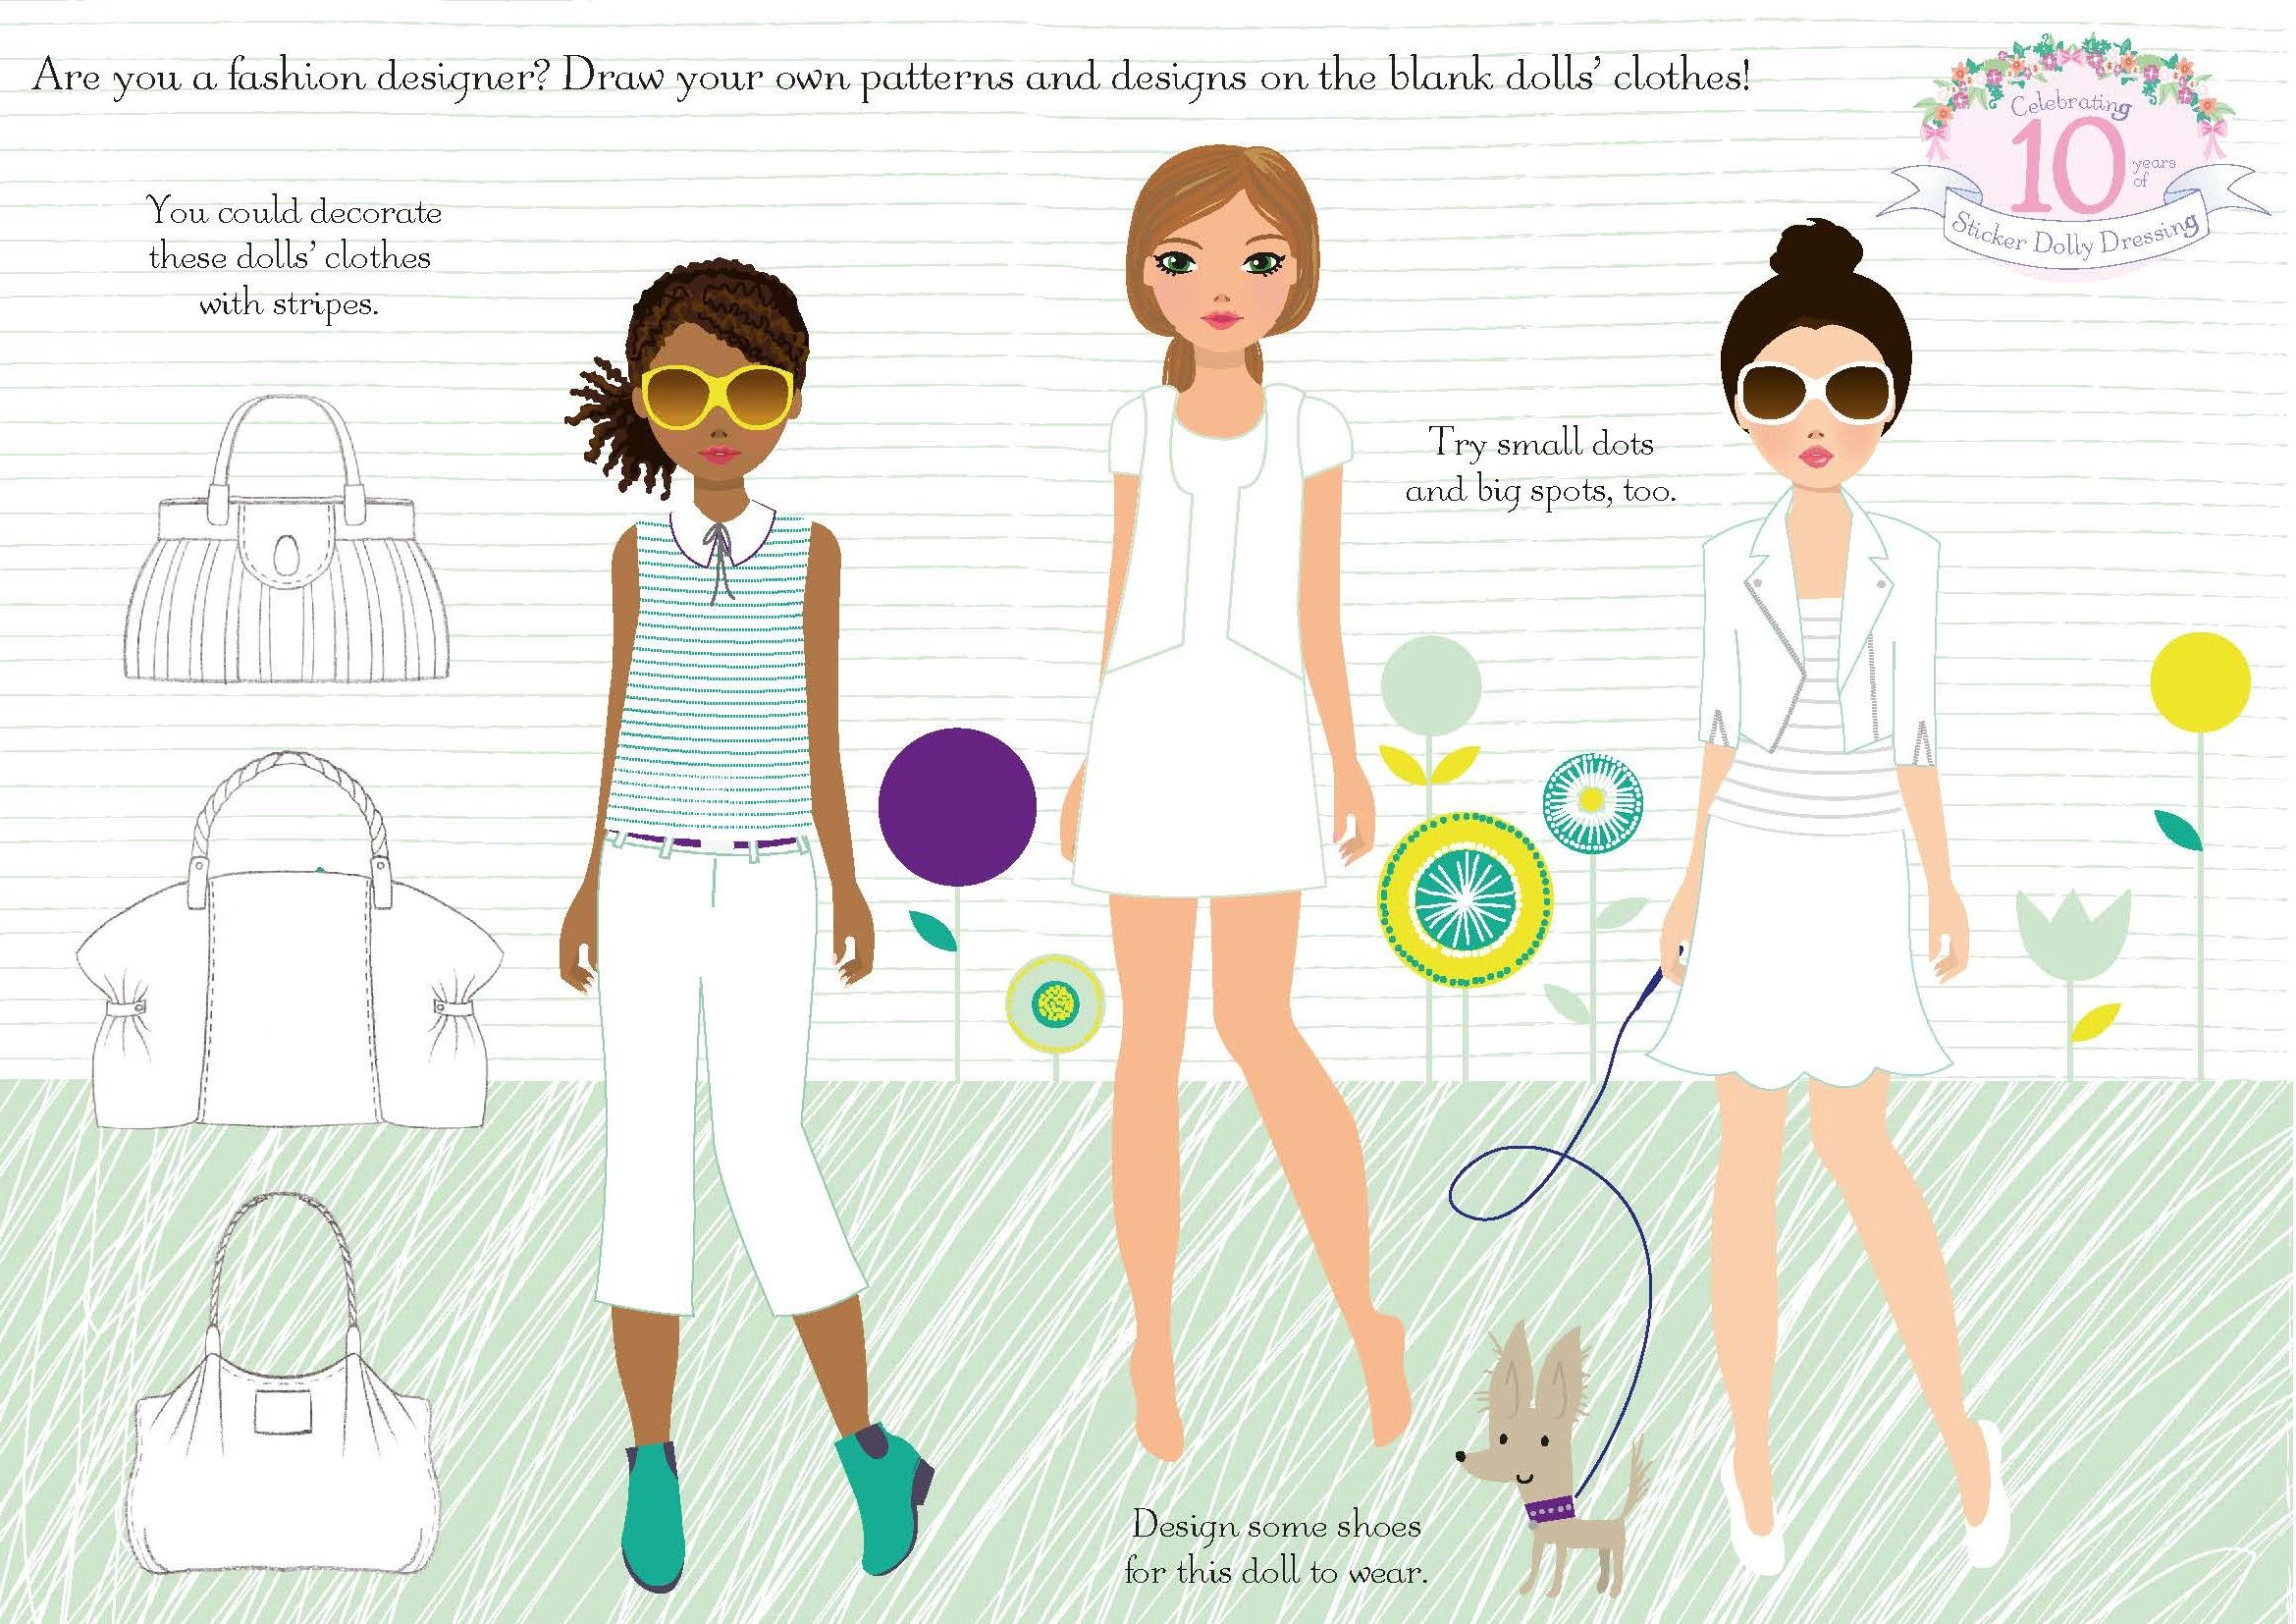 Download And Colour In This Design Your Own Outfit Activity Sheet Fashiondesigner Stickerdollydressing Stickerdollyis10 Fashion Design Design Dolly Dress